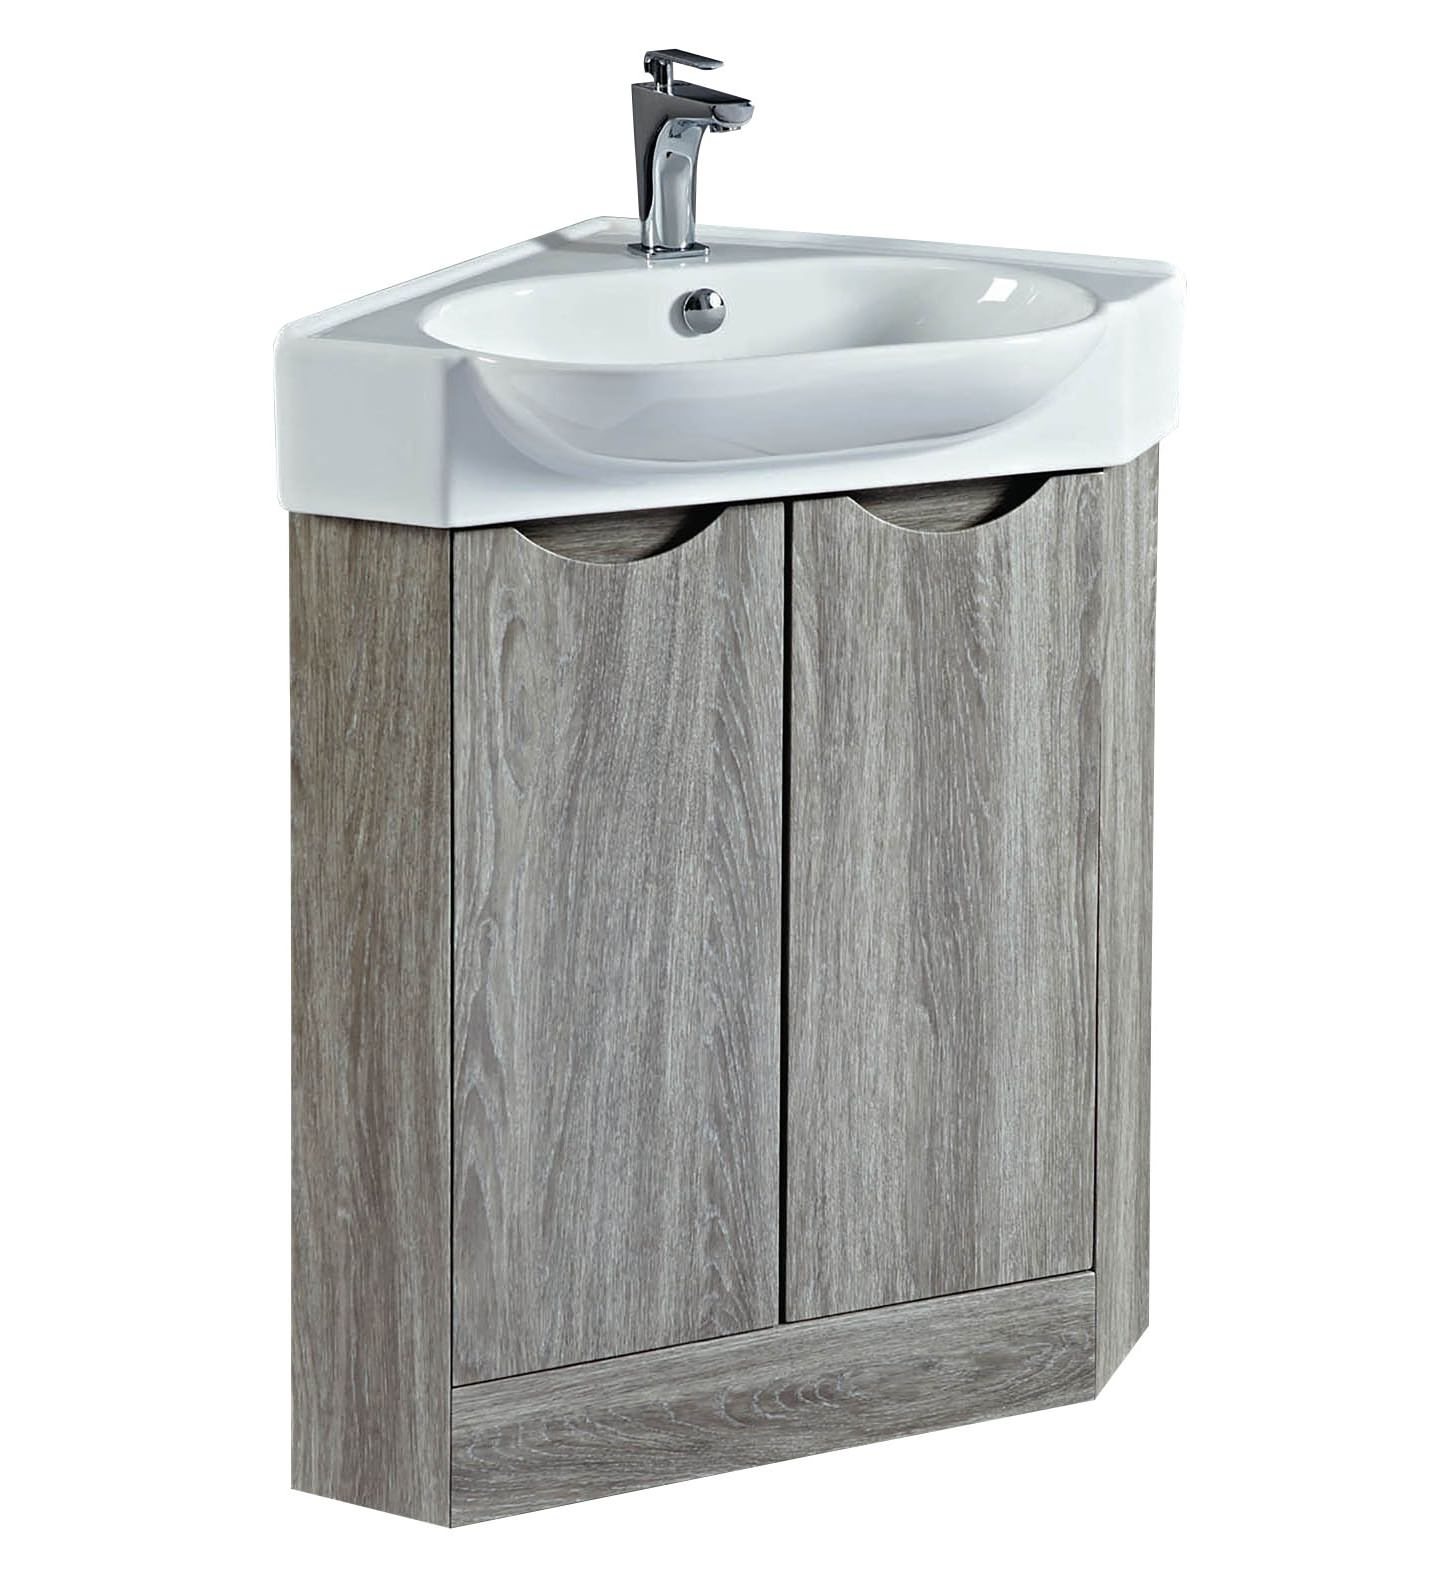 Corner Basin And Vanity Unit : ... vanity units phoenix dakota 510mm corner vanity unit and basin avola